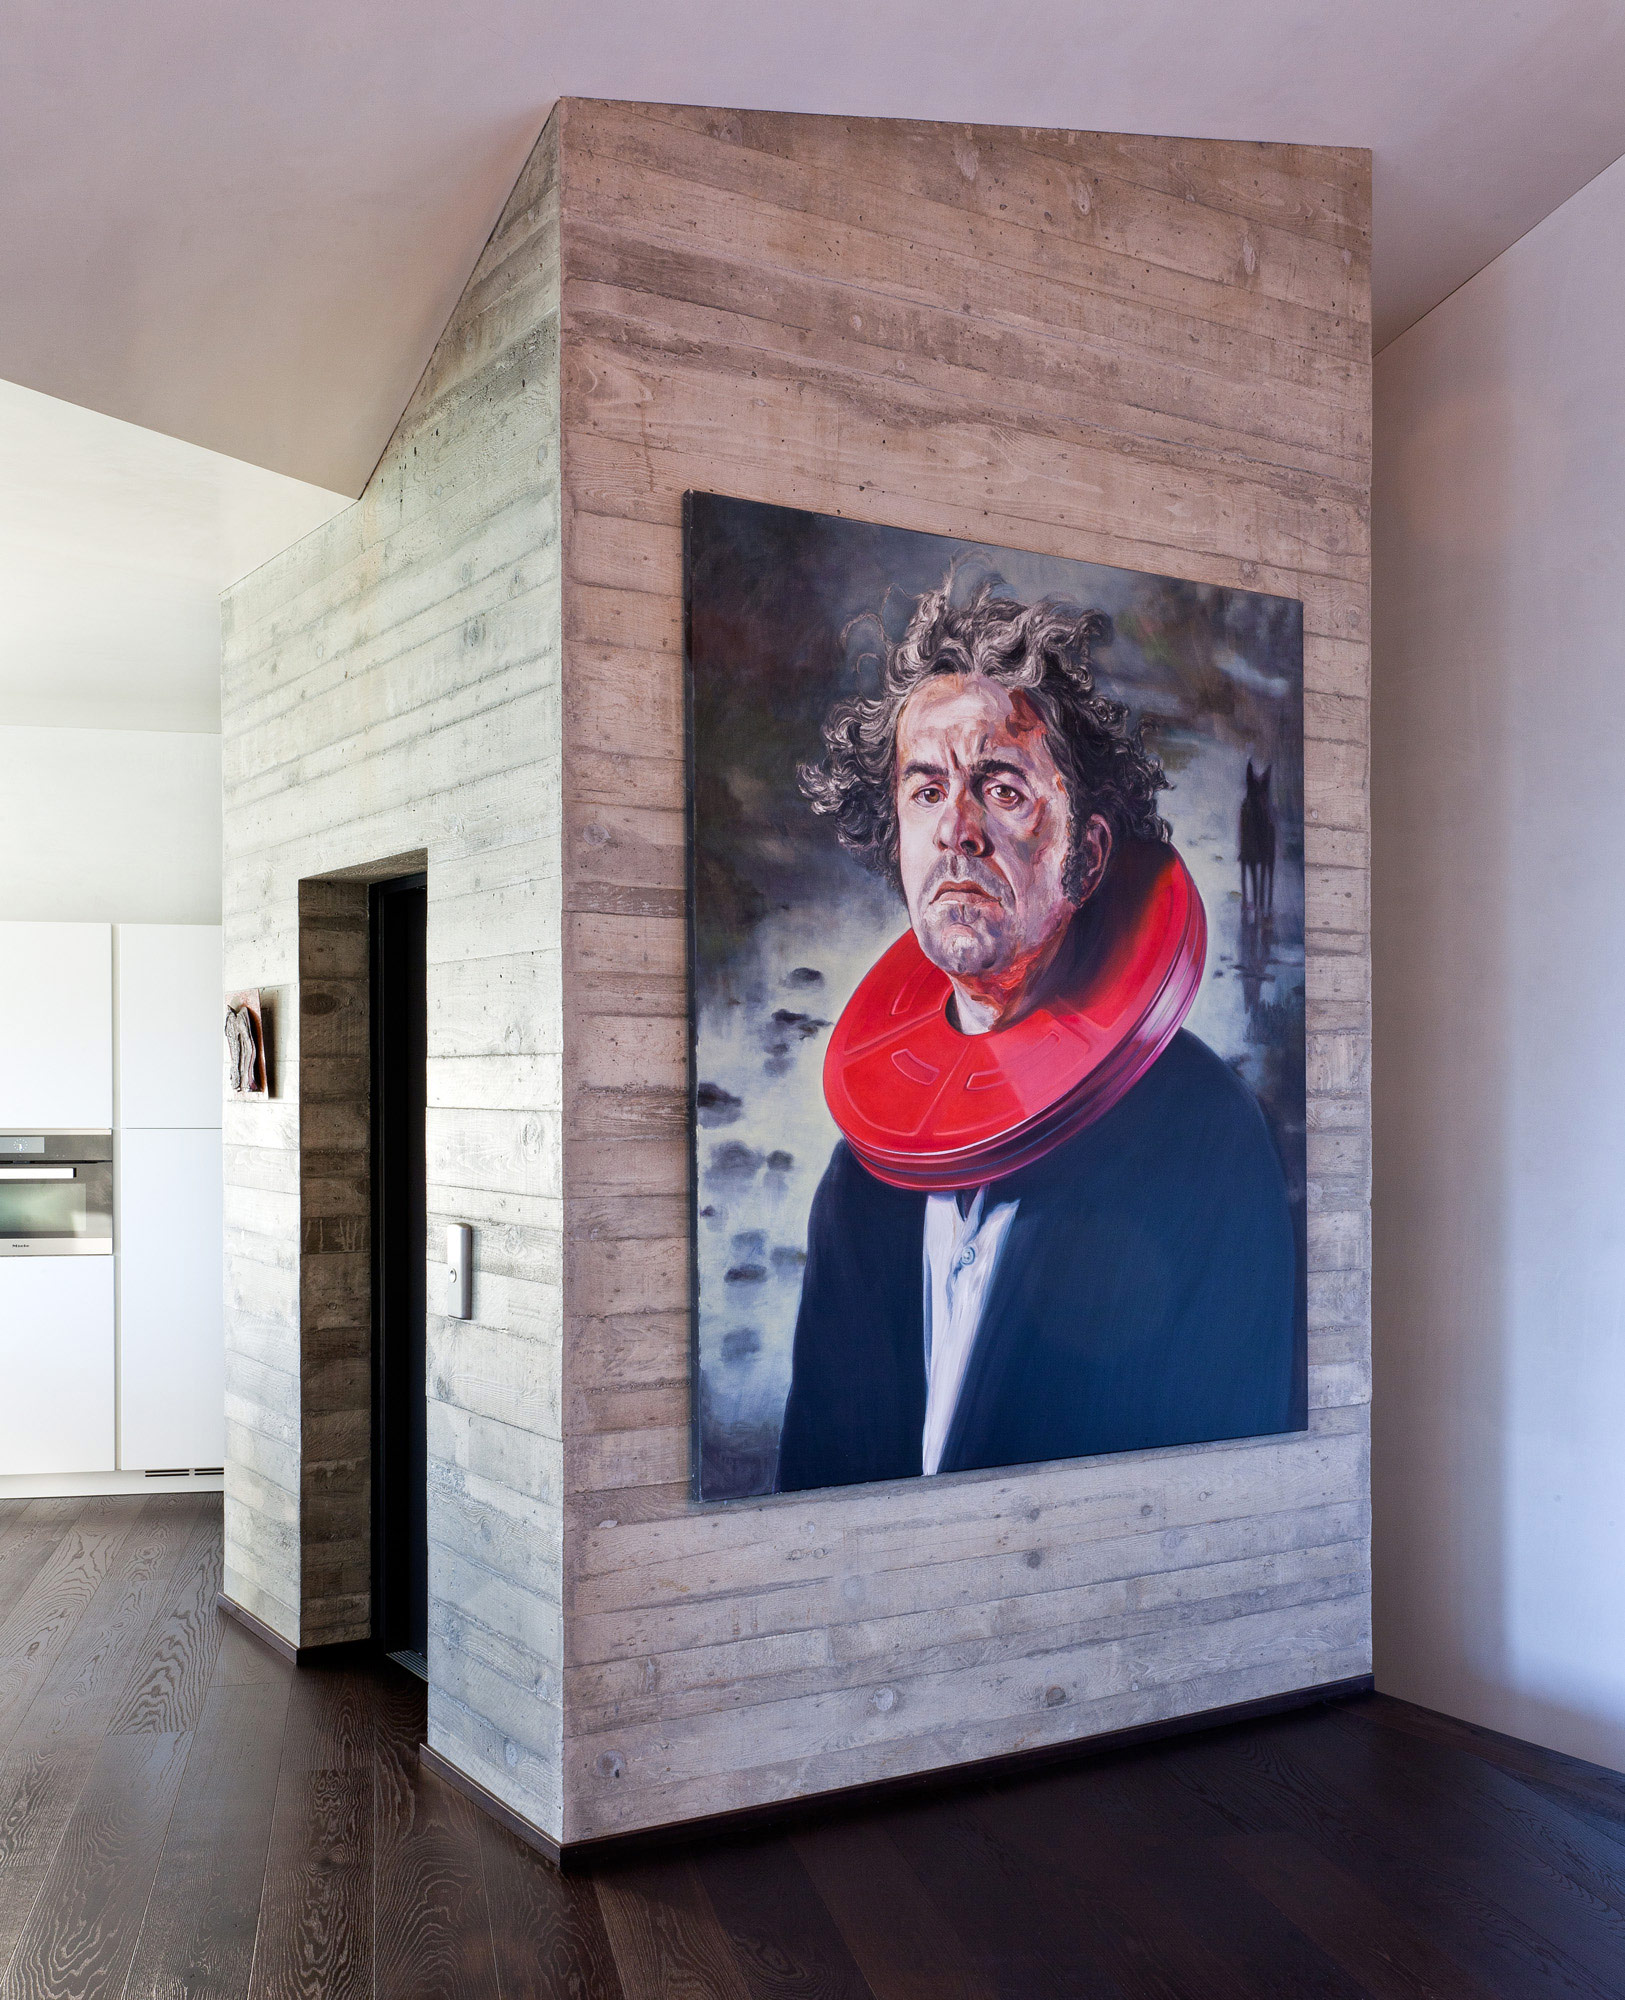 AMC Studio - Private House - Corognola - Andrea Bosio